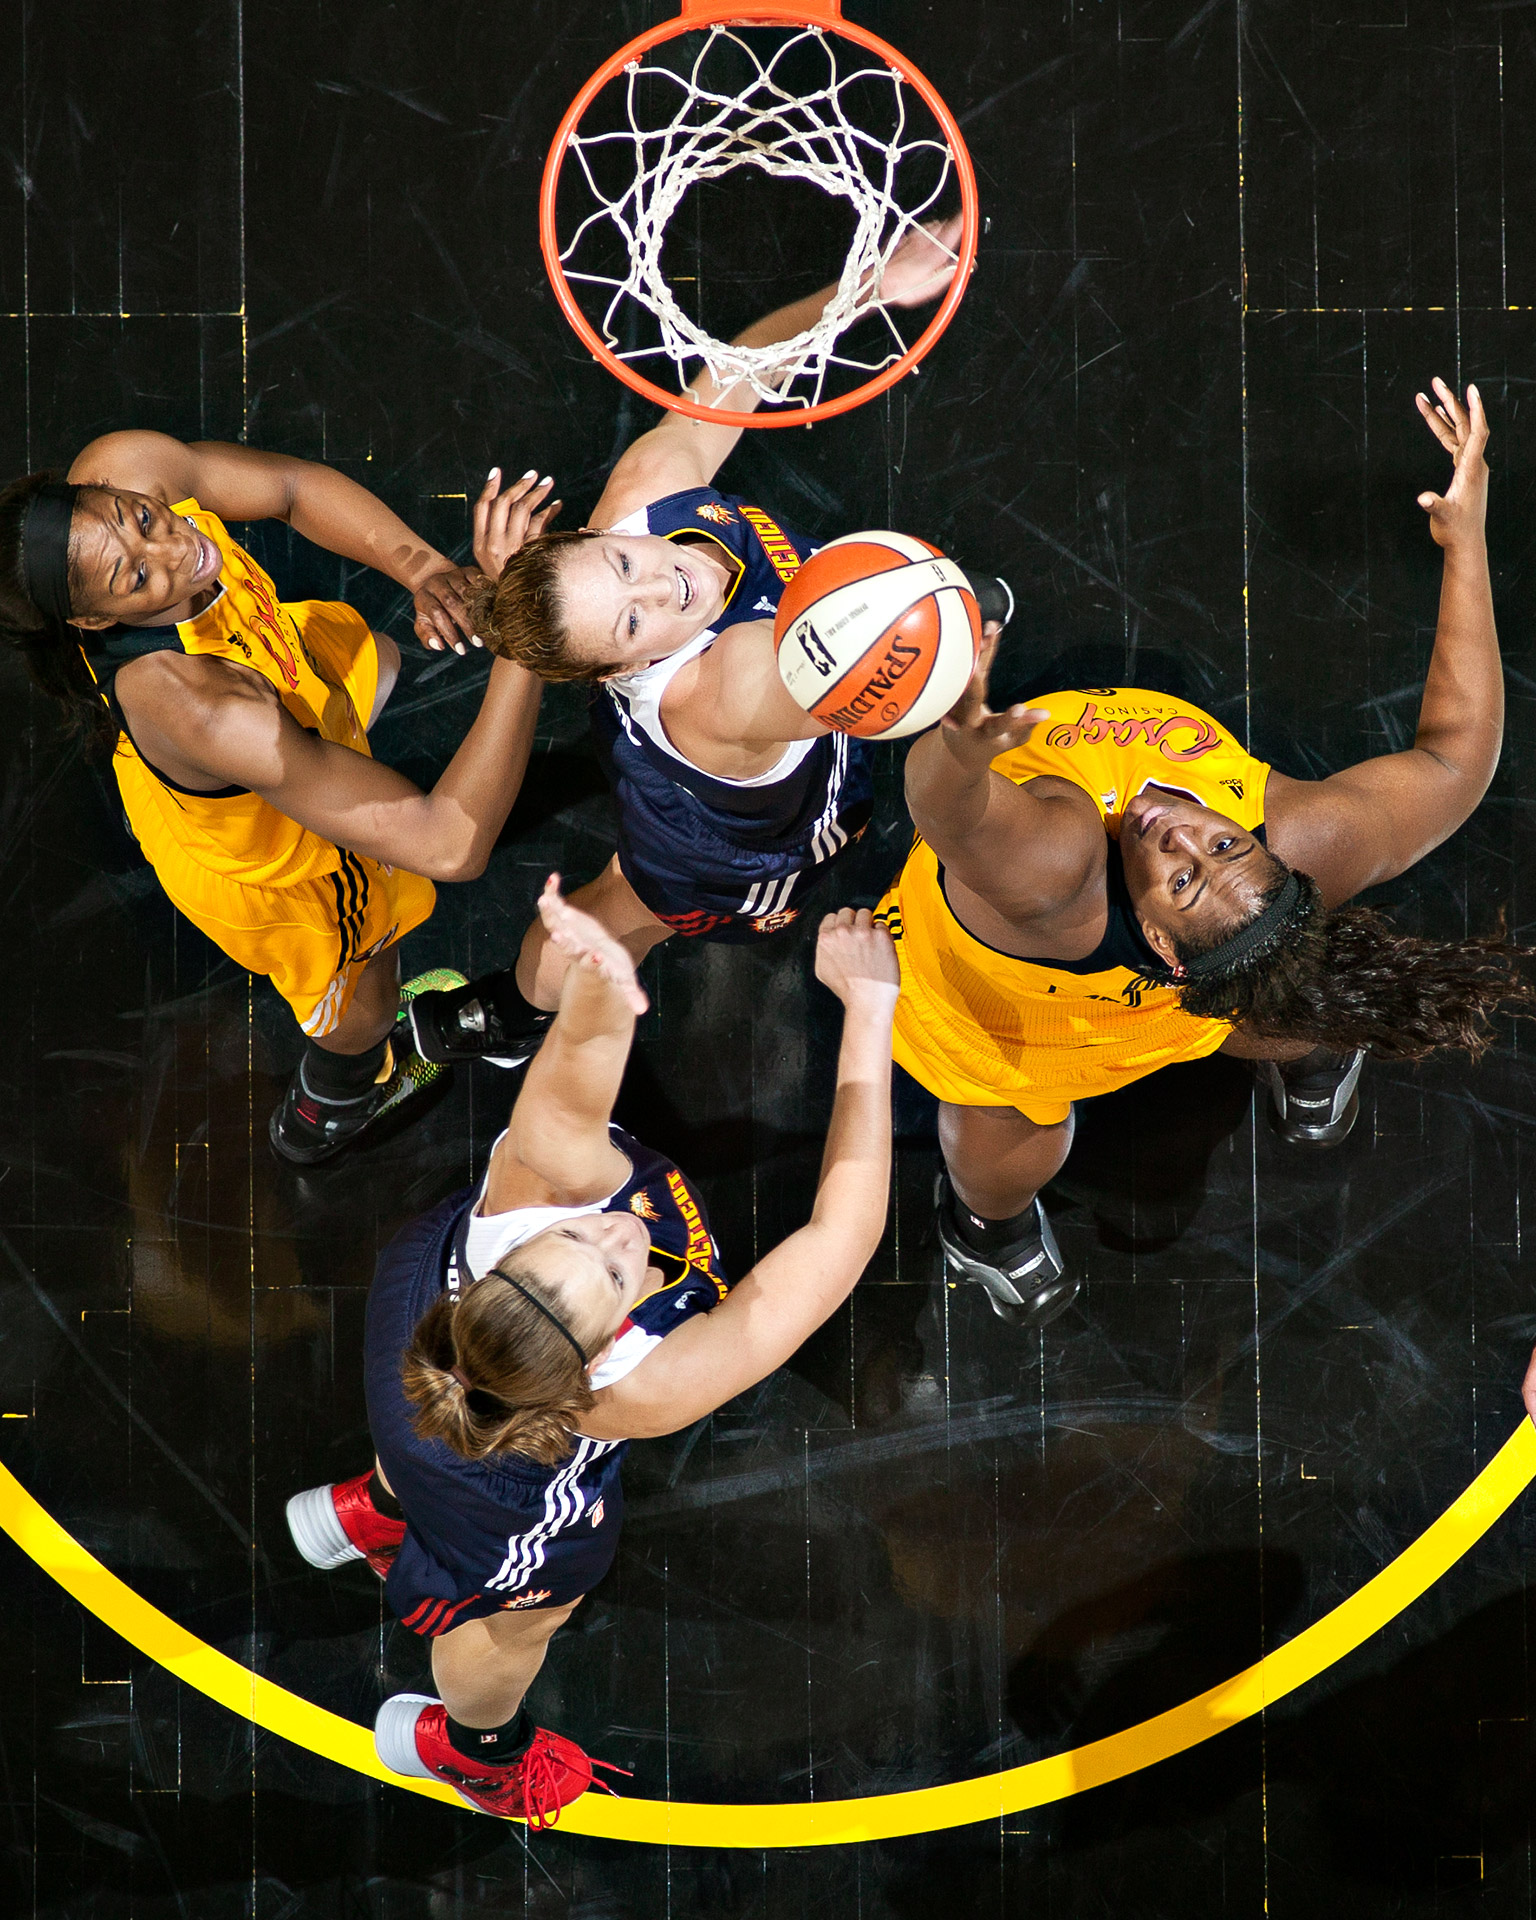 The Connecticut Sun's Kelsey Griffin (5) and Kayla Pedersen (7) rebound against the Tulsa Shock's Glory Johnson (25) and Courtney Paris (3) during their WNBA game at the BOK Center in Tulsa, Oklahoma.